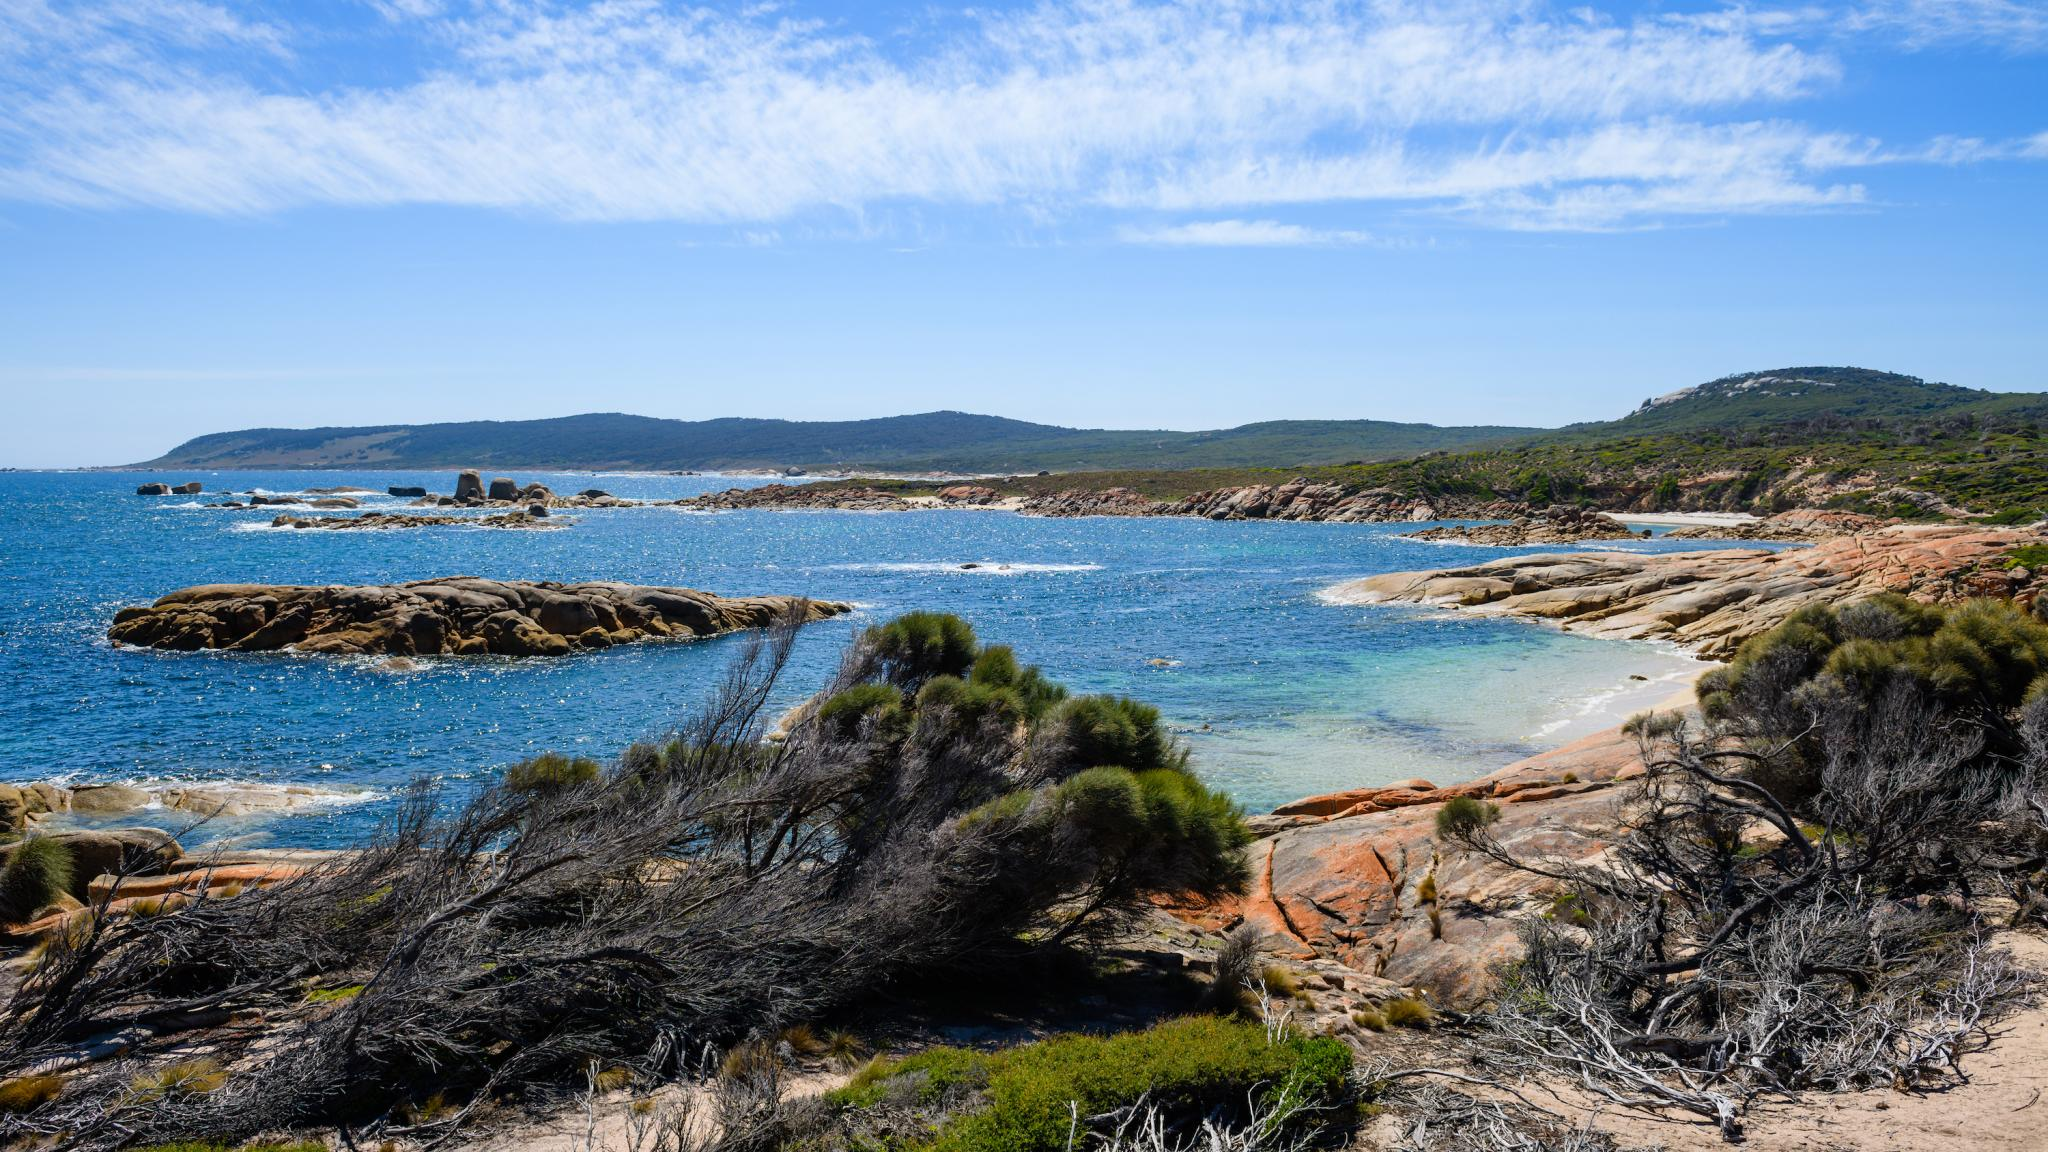 Roaring 40s Kayaking - Stunning beaches and coastline of Flinders Island explored on a sea kayaking tour